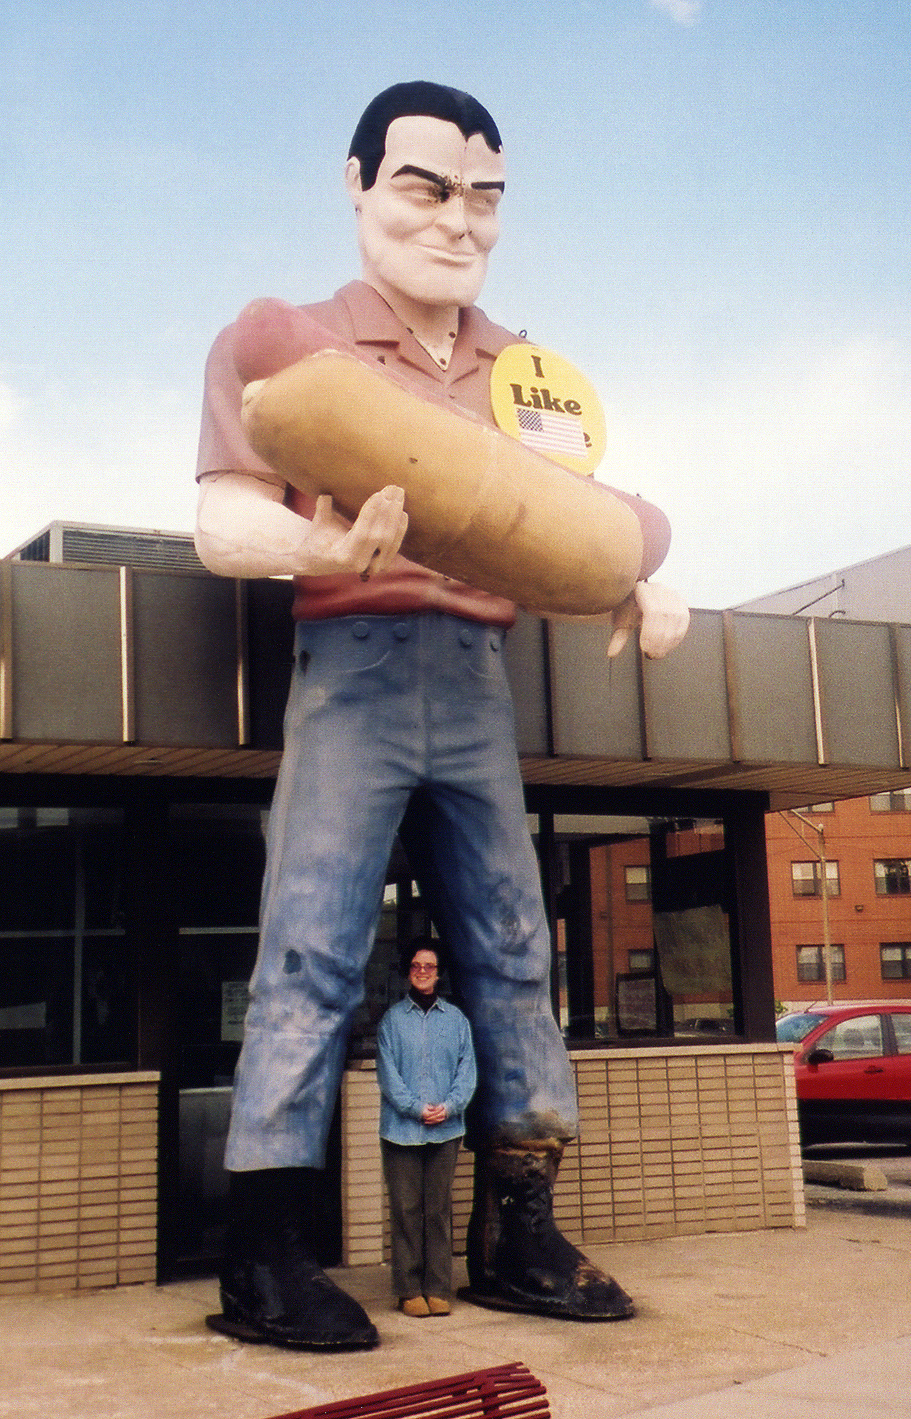 Muffler men (or muffler man) are large moulded fiberglass sculptures that are placed as advertising icons, roadside attractions or for decorative purp